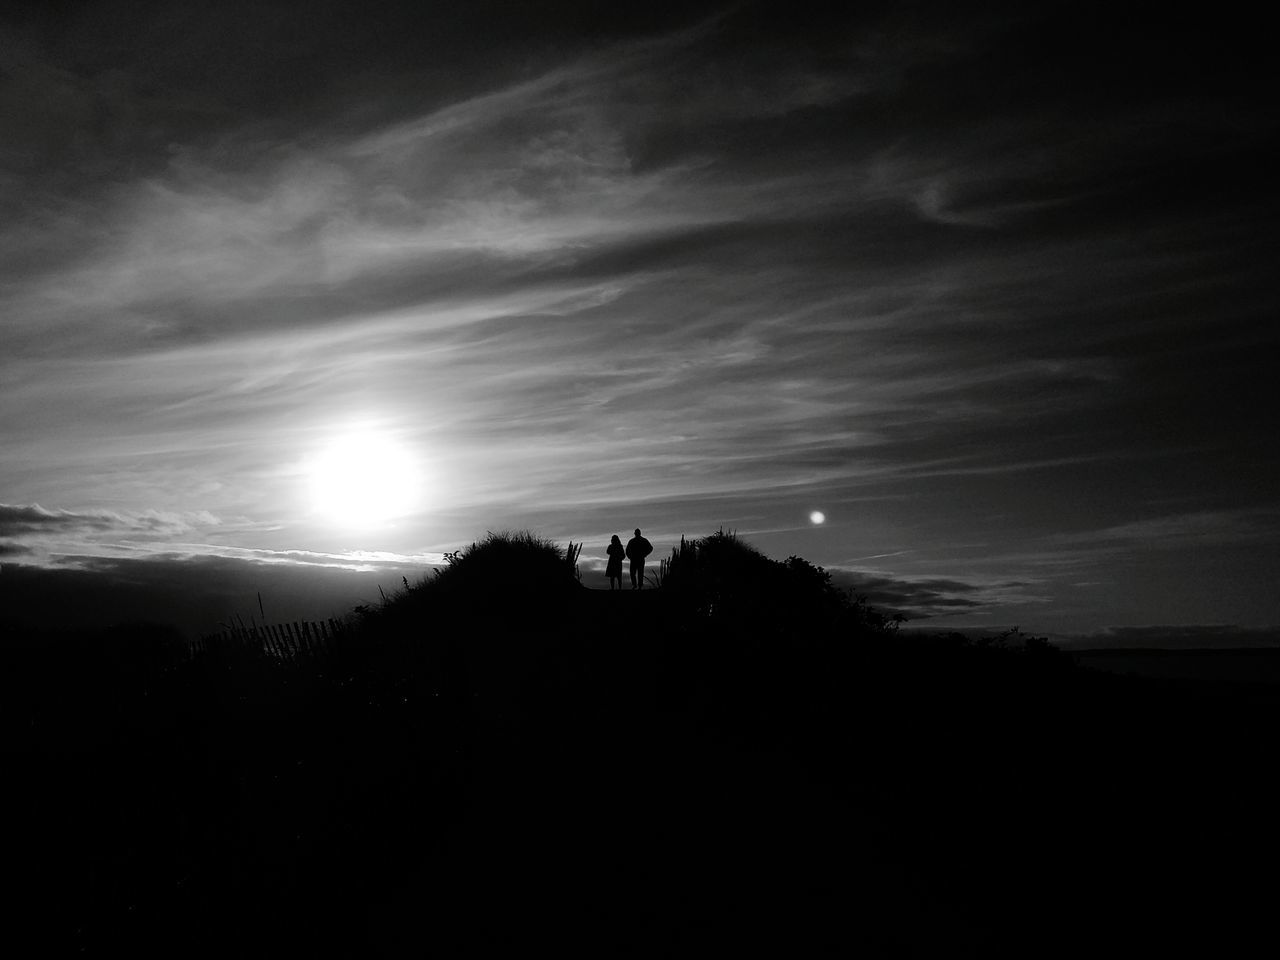 Monochrome Photography Silhouette Tranquil Scene Sun Tranquility Scenics Sunlight Cloud Sky Beauty In Nature Nature Mountain Majestic Dark Non-urban Scene Outdoors Physical Geography Atmosphere Remote Moody Sky Solitude EyeEm Masterclass Exceptional Photographs EyeEm Gallery EyeEm Best Shots